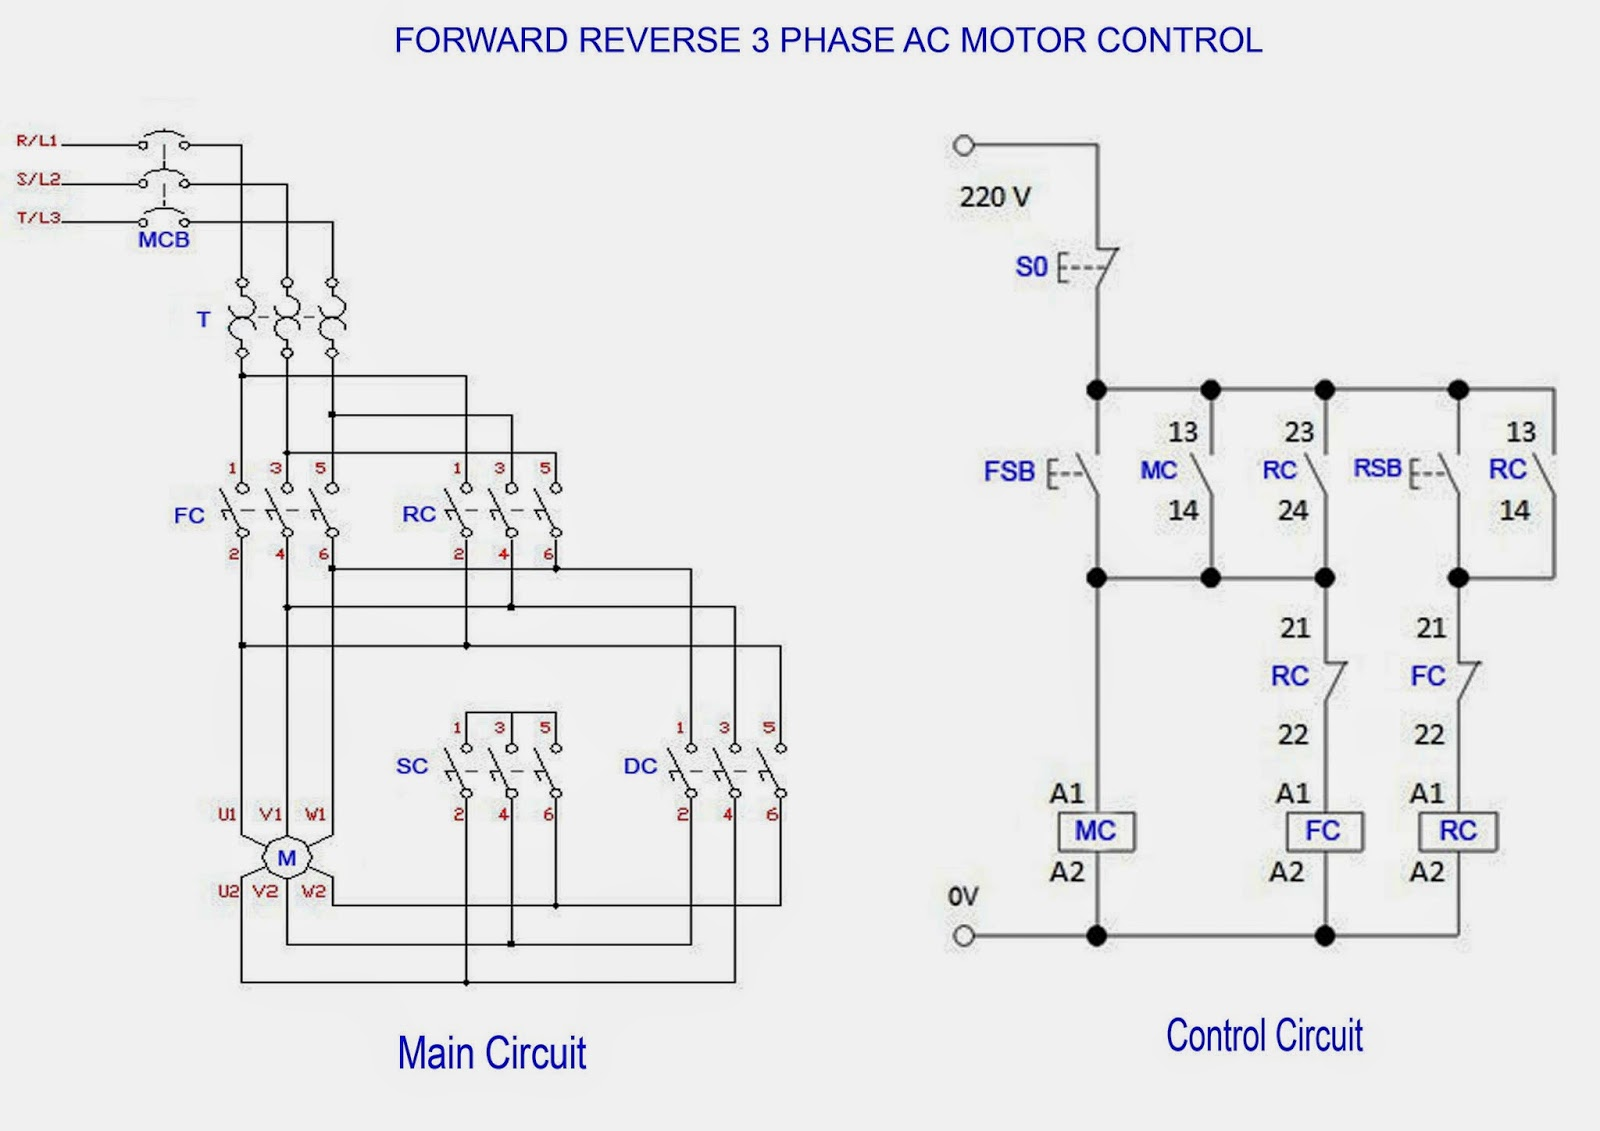 Magnificent Monitor Power Control Wiring Diagram General Wiring Diagram Data Wiring Cloud Orsalboapumohammedshrineorg